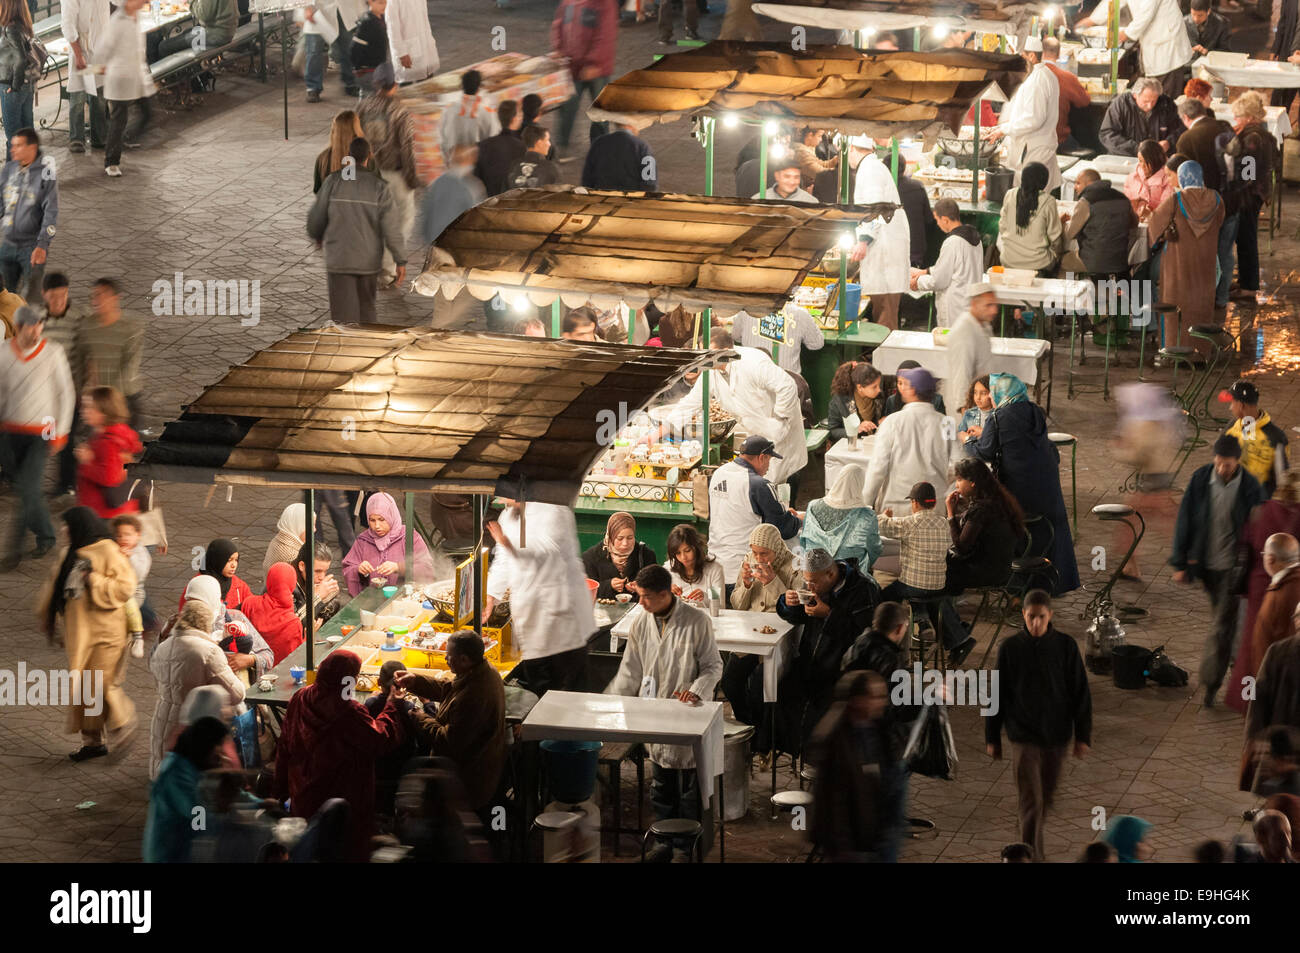 Food stands at the Jemaa el-Fnaa square in Marrakesh. November 23, 2008 in Marrakesh, Morocco Stock Photo